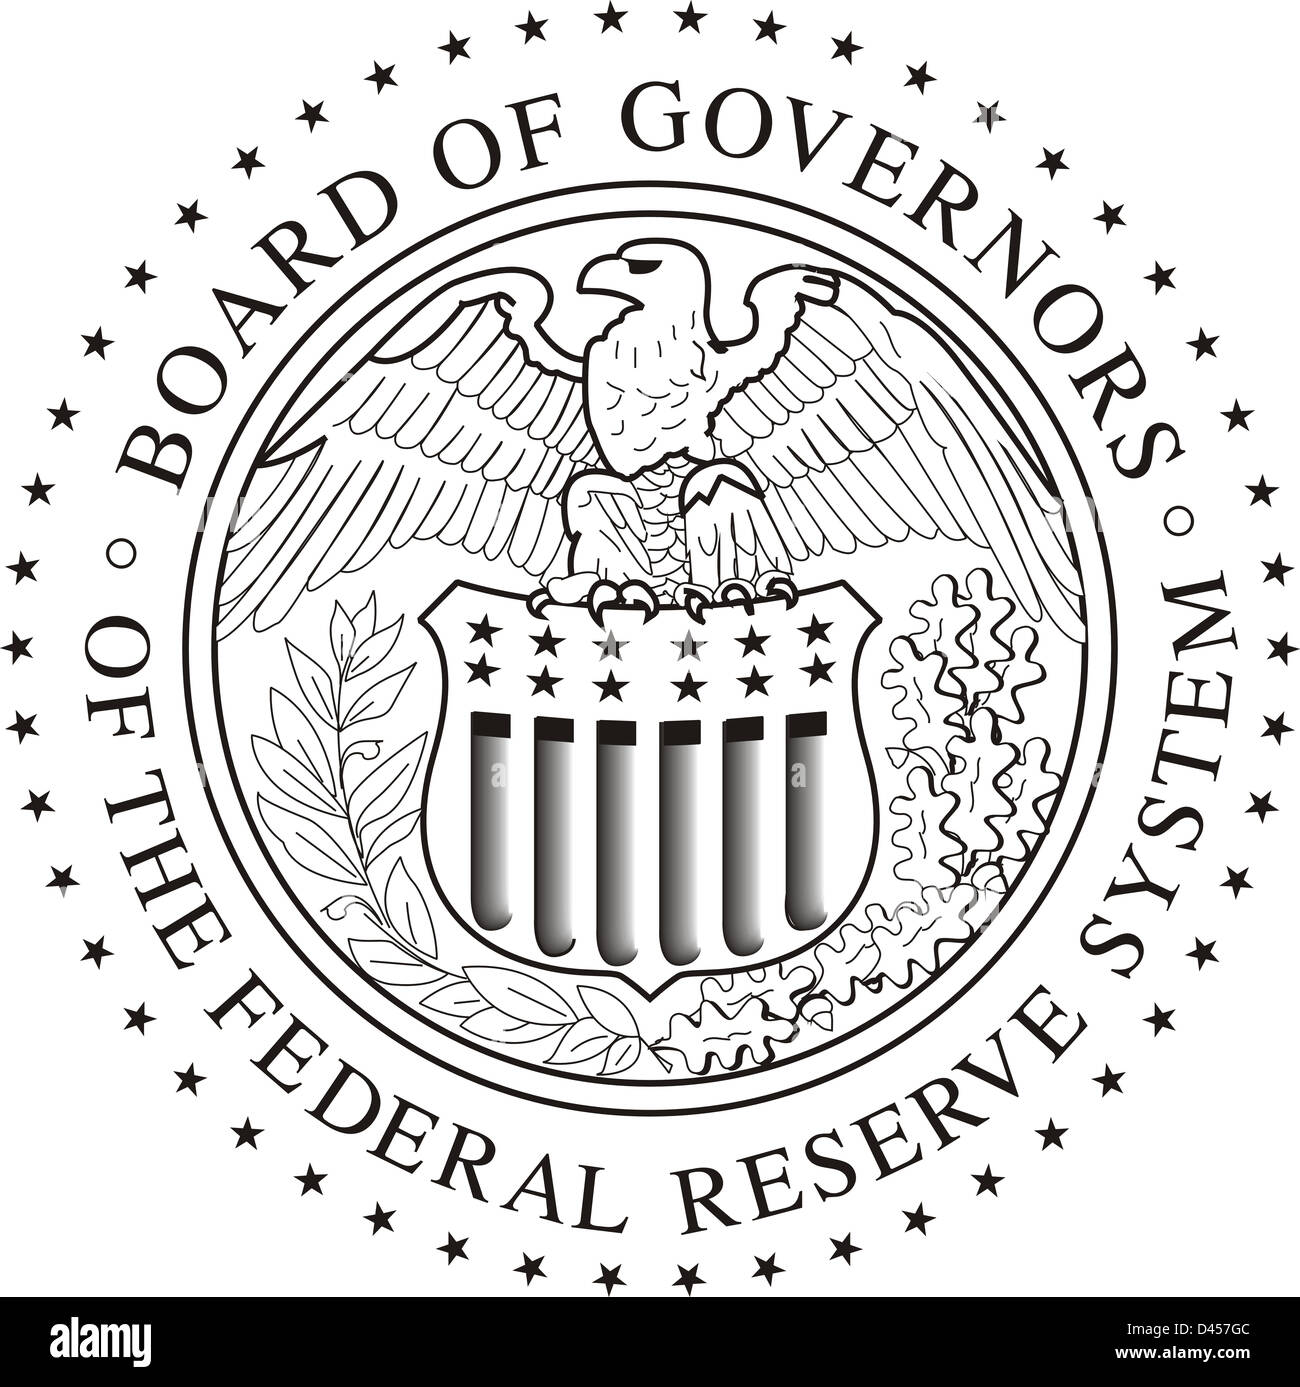 fed board meeting Browse schedules for the meetings of the governing council and general council of the ecb and related press conferences.